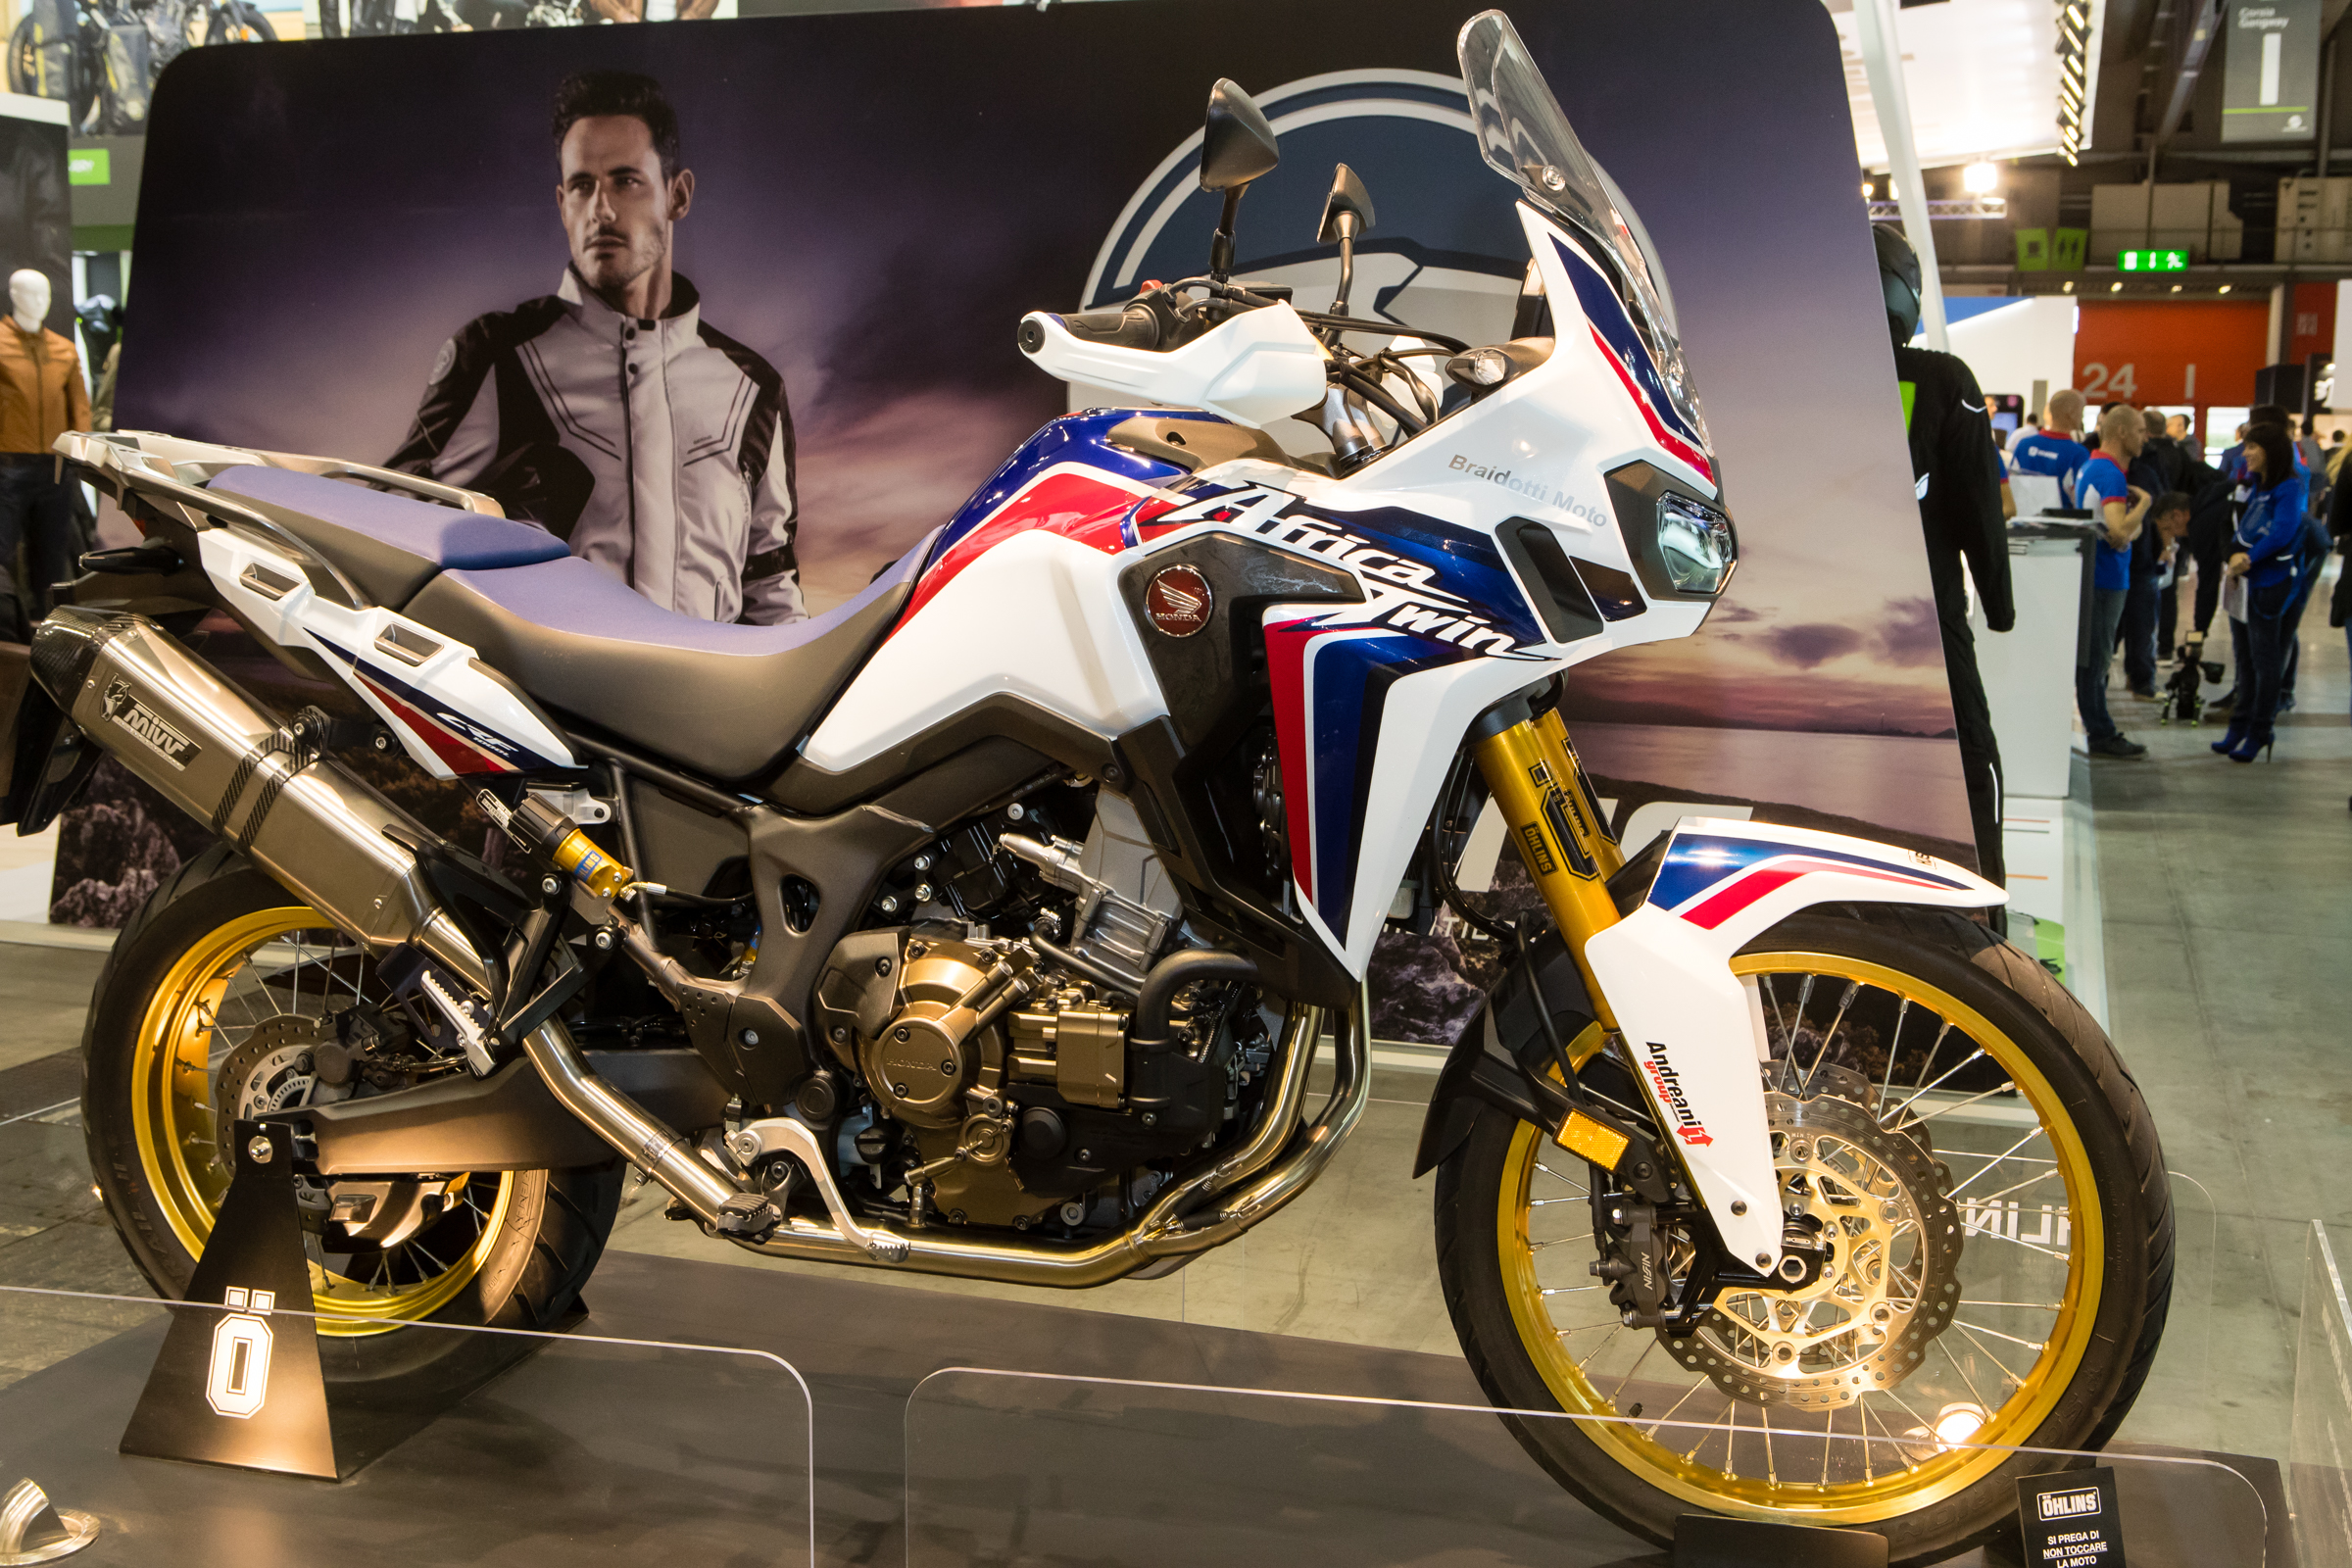 With the growth in the Adventure market, Ohlins stepped in to produce a full set of suspension for one of the most popular models that guys want off-road, the Africa Twin.